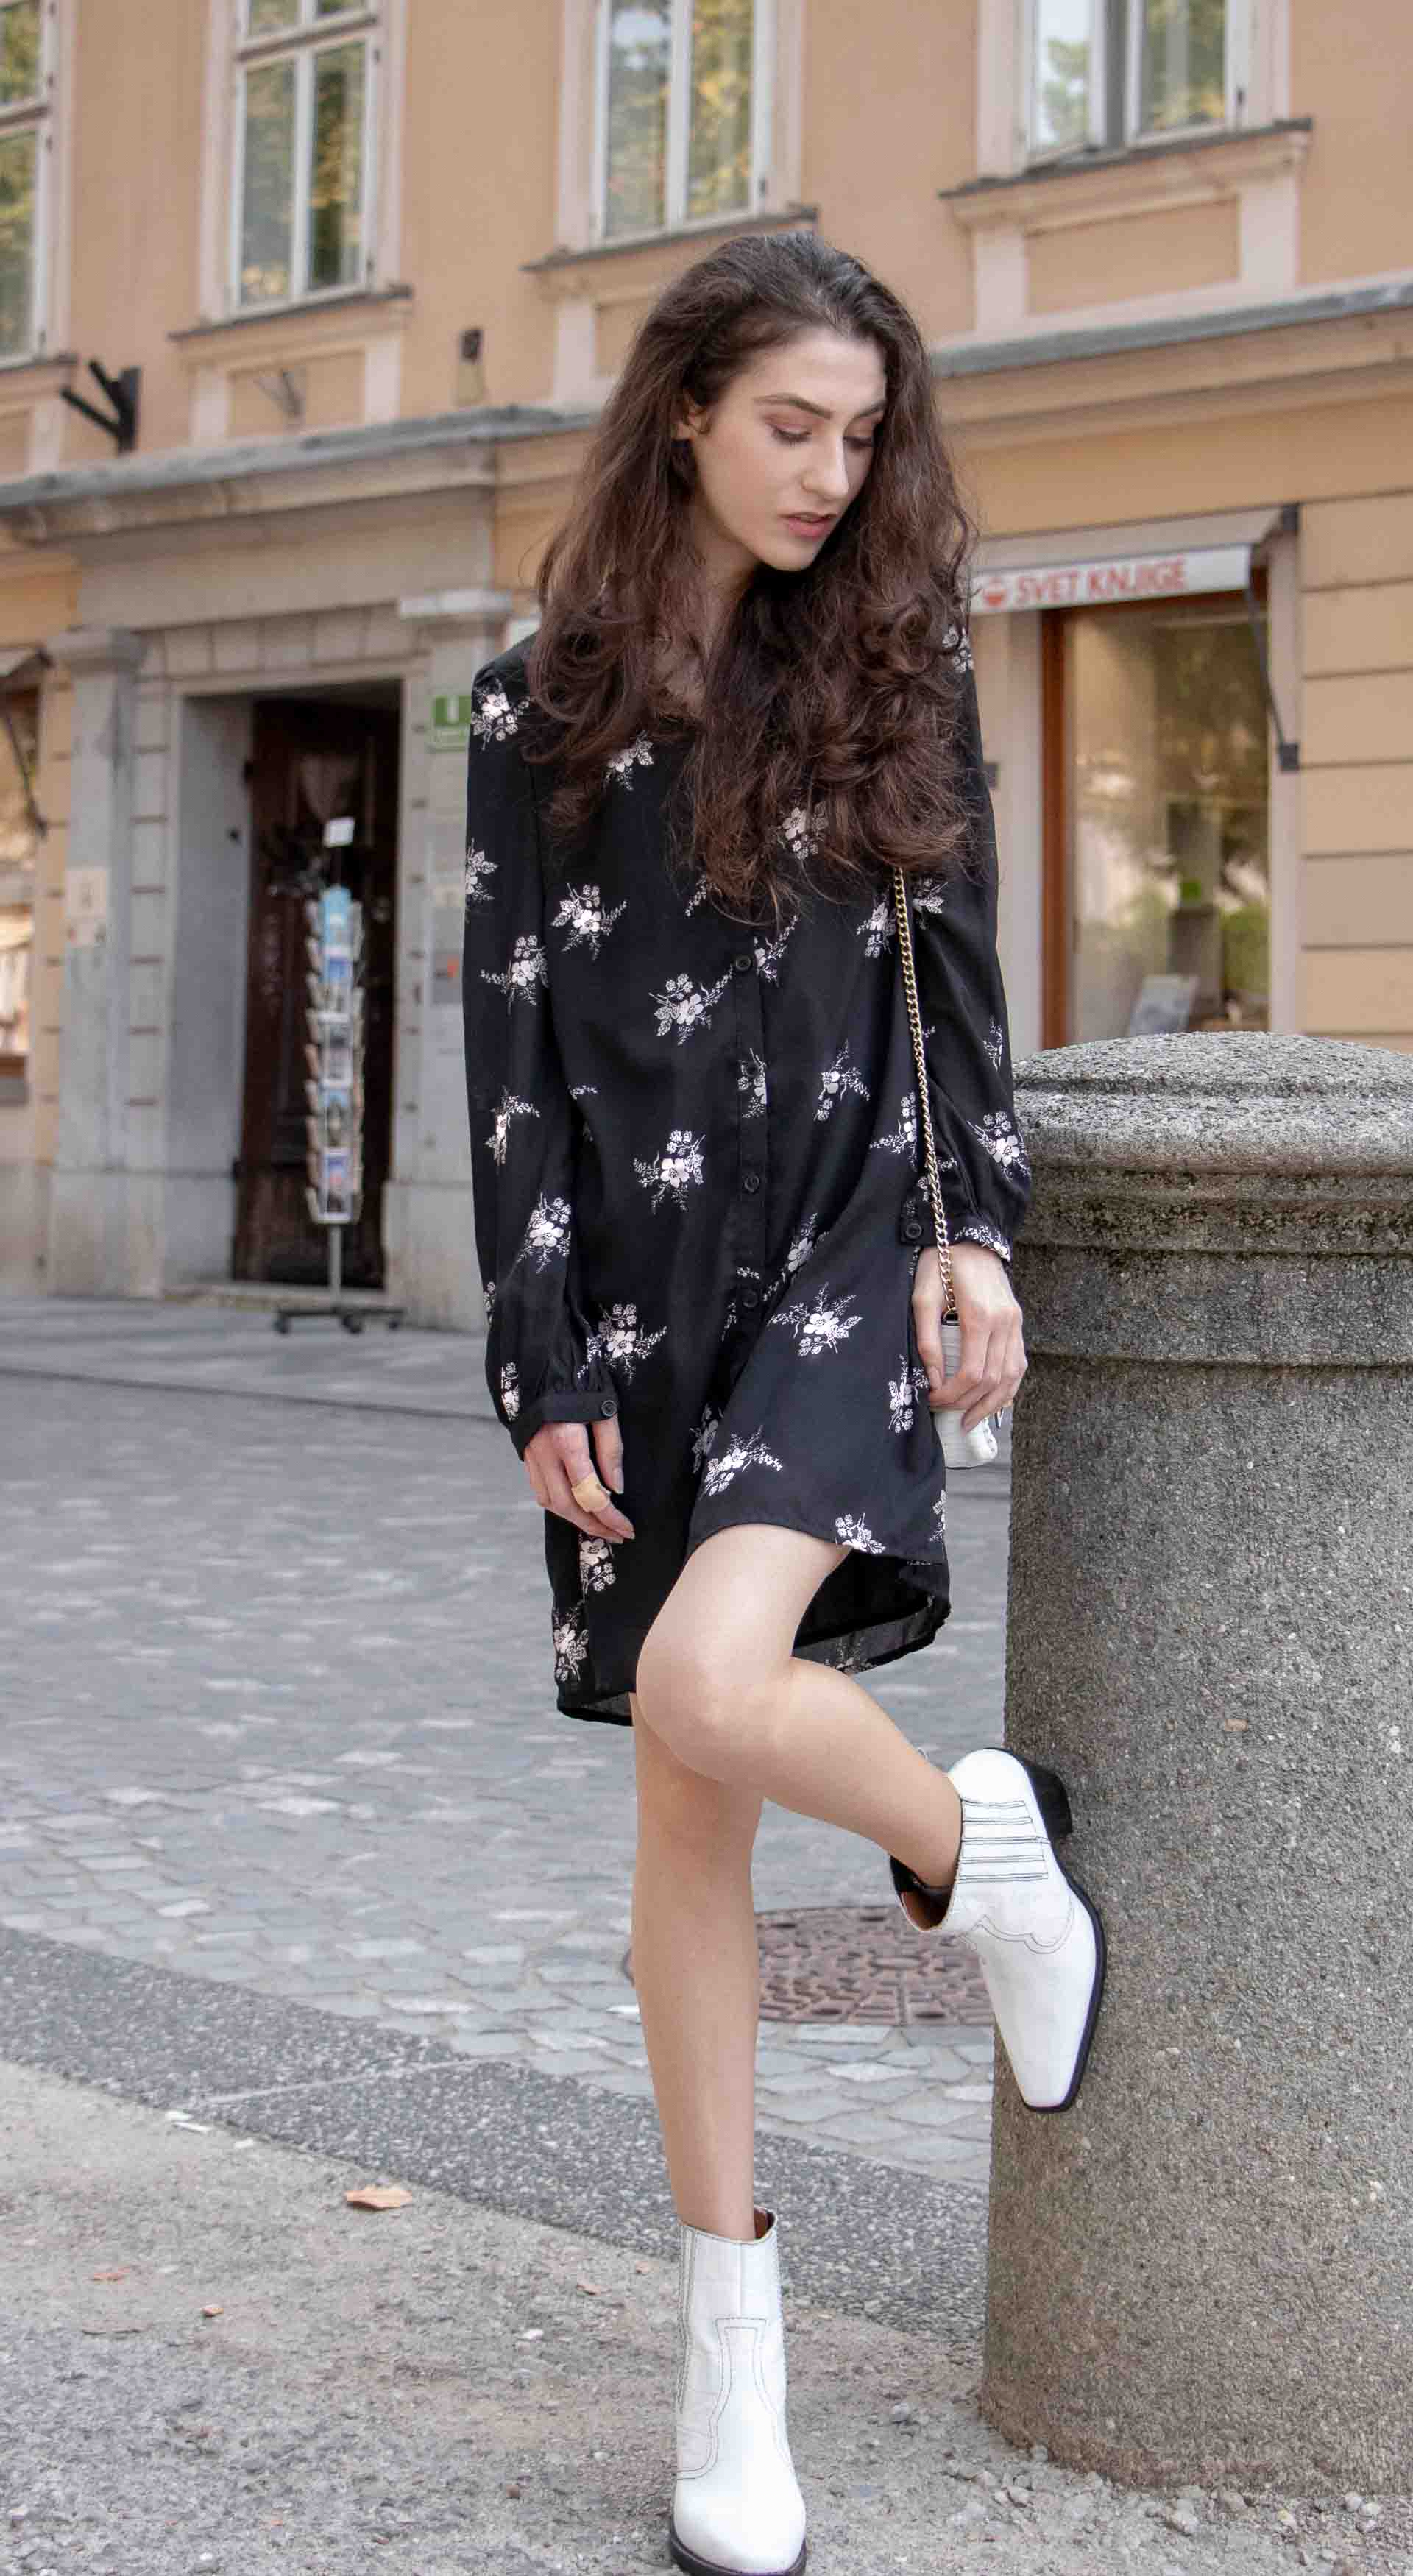 Beautiful Slovenian Fashion Blogger Veronika Lipar of Brunette from Wall dressed in dark floral shirtdress with white Ganni cowboy boots, white chain shoulder bag in Fall leaning on the wall